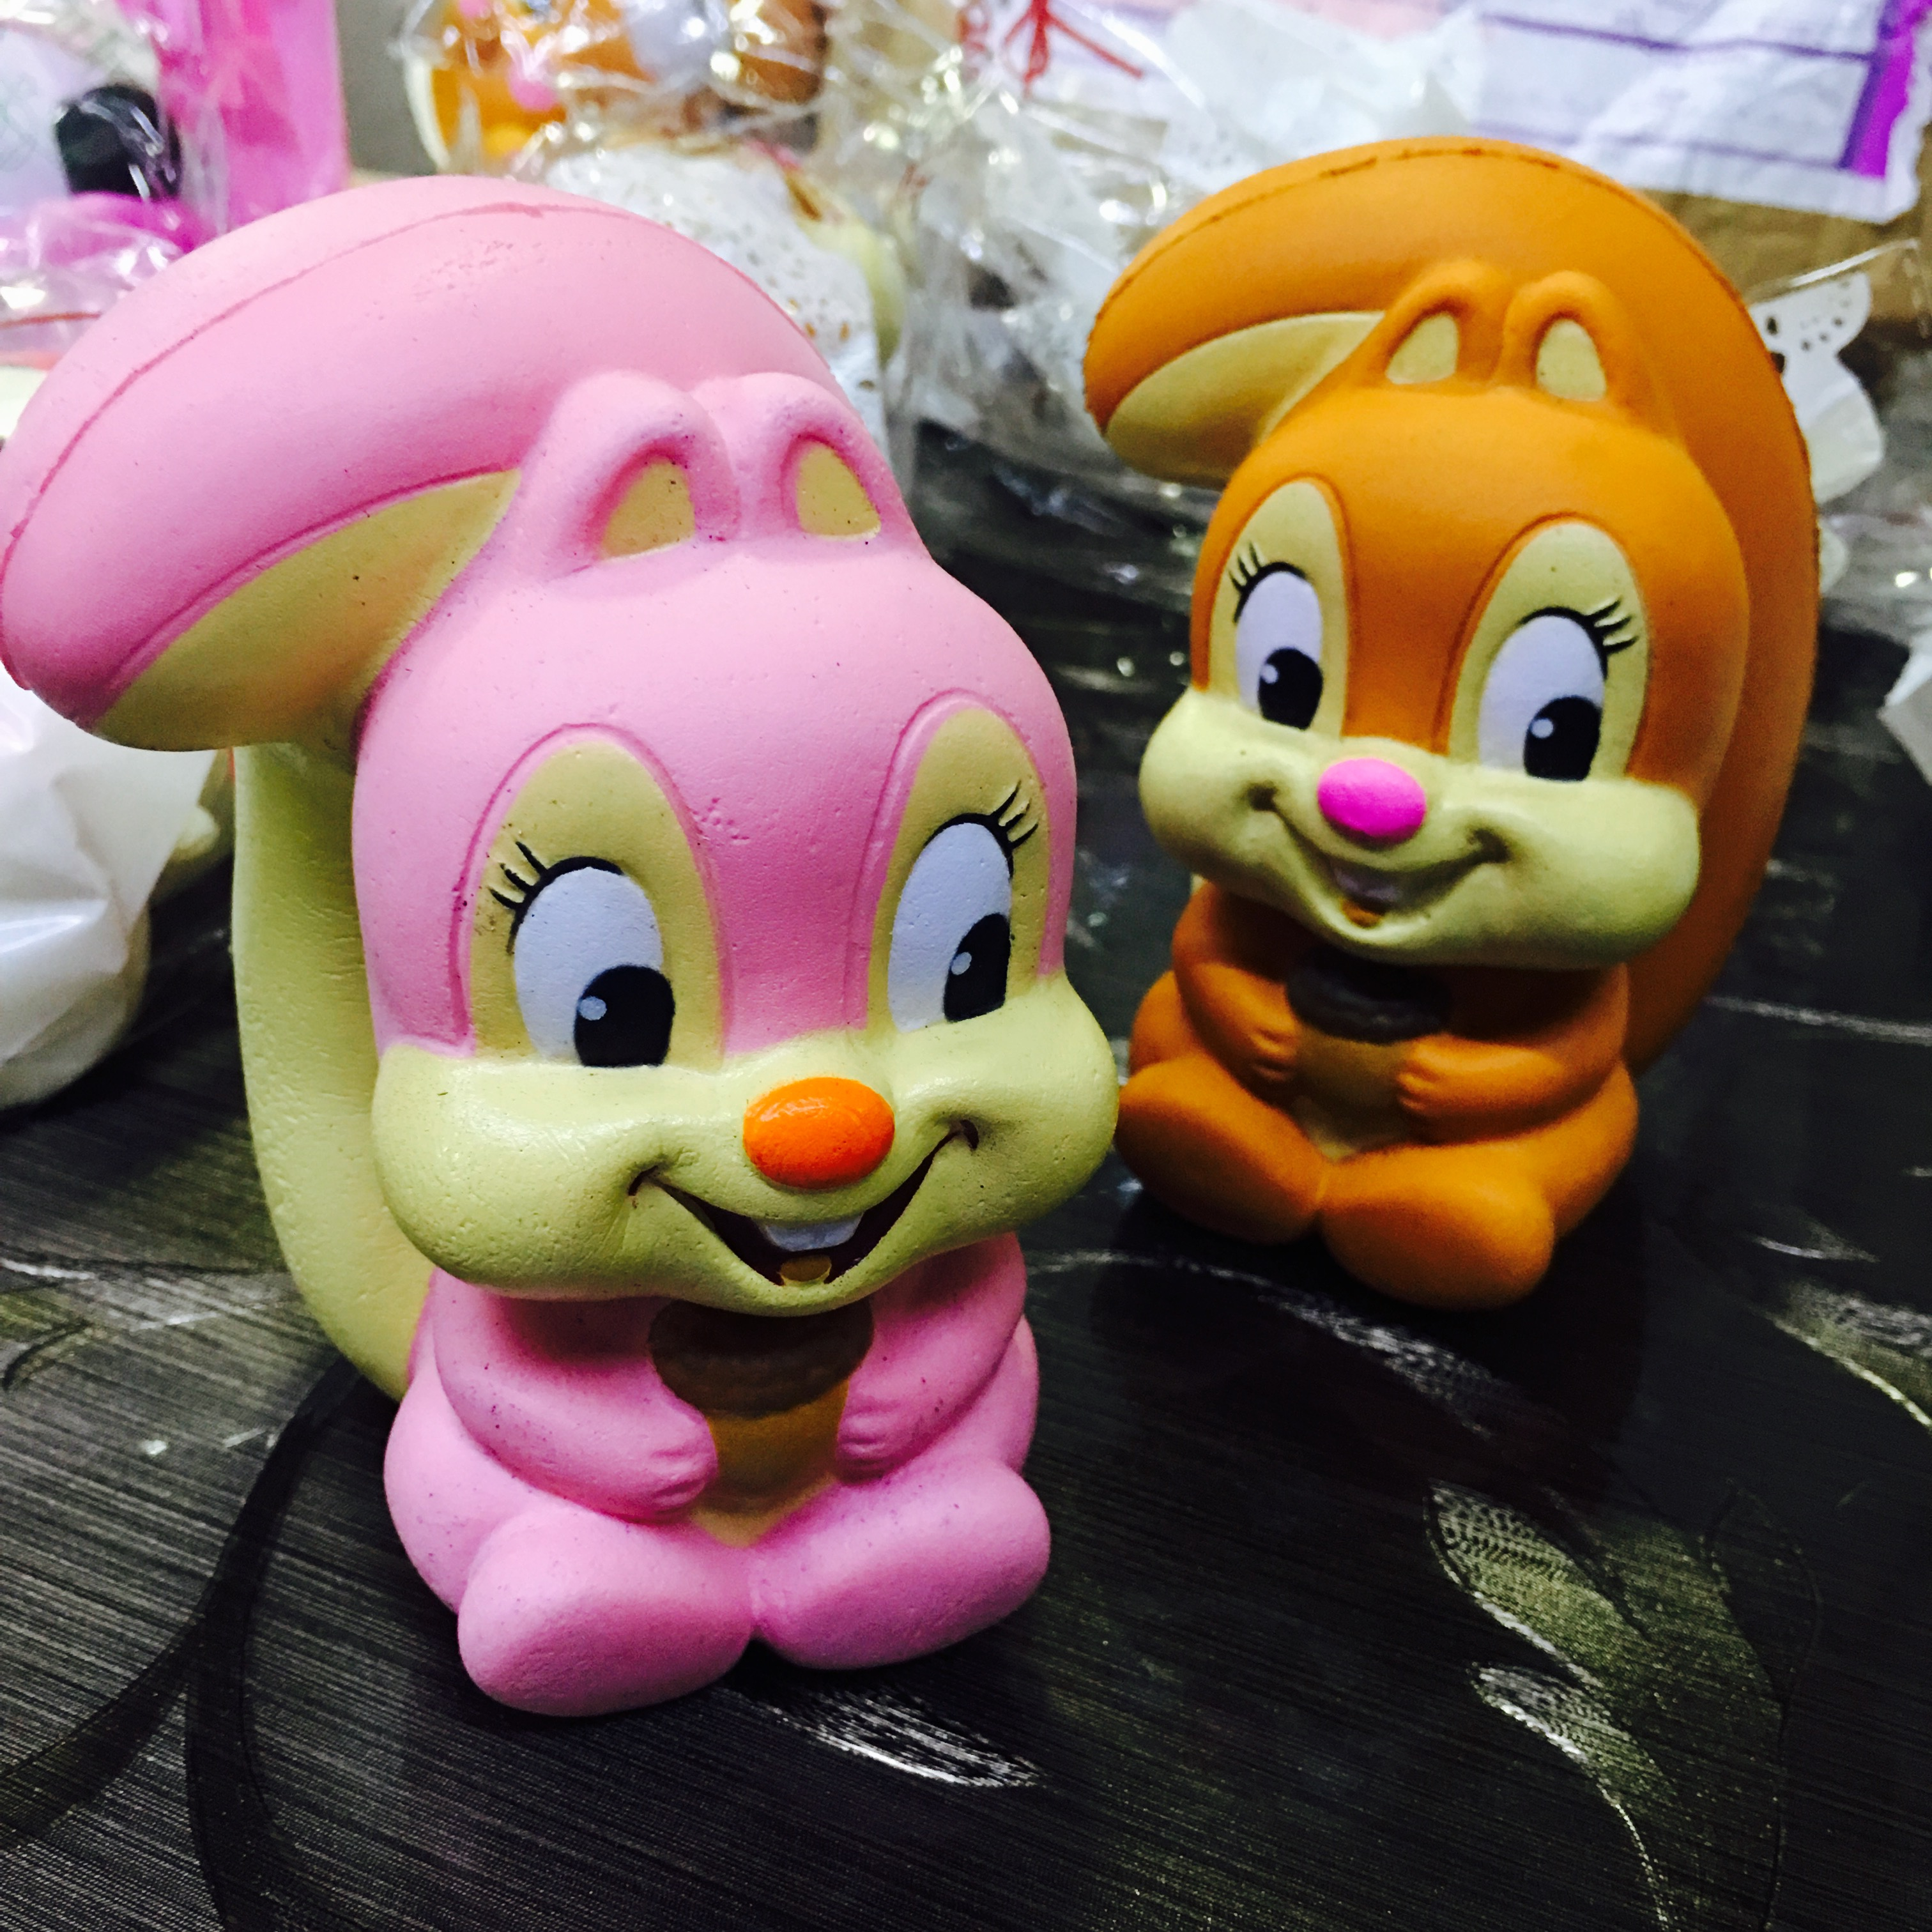 Massive Squishy Collection : ~SquishyStuff~ 13cm Huge Cute Squirrel Squishy Mascot Online Store Powered by Storenvy